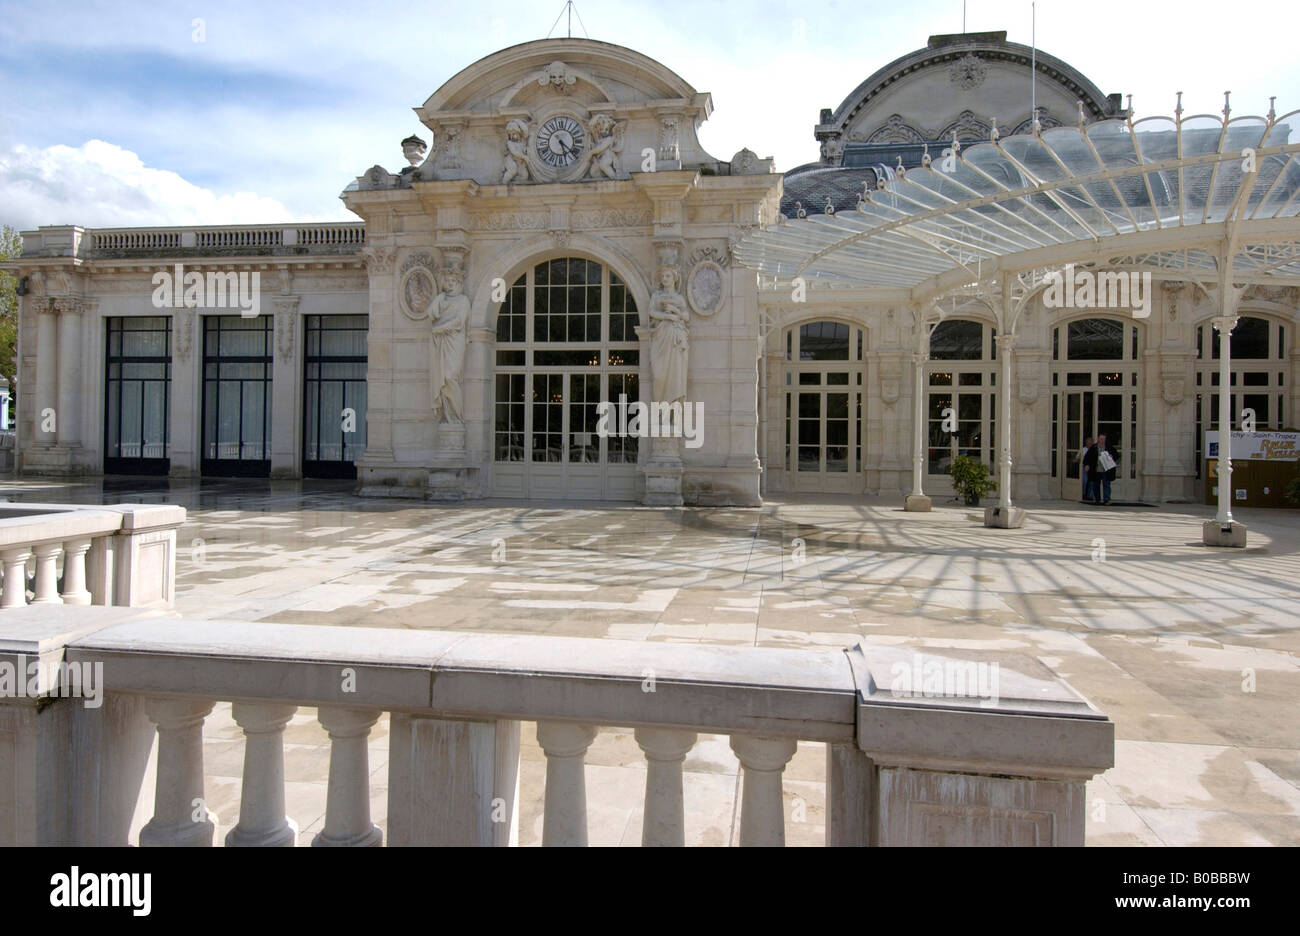 Grand Casino Opera, Allier, Vichy, Auvergne, France, Europe Banque D'Images